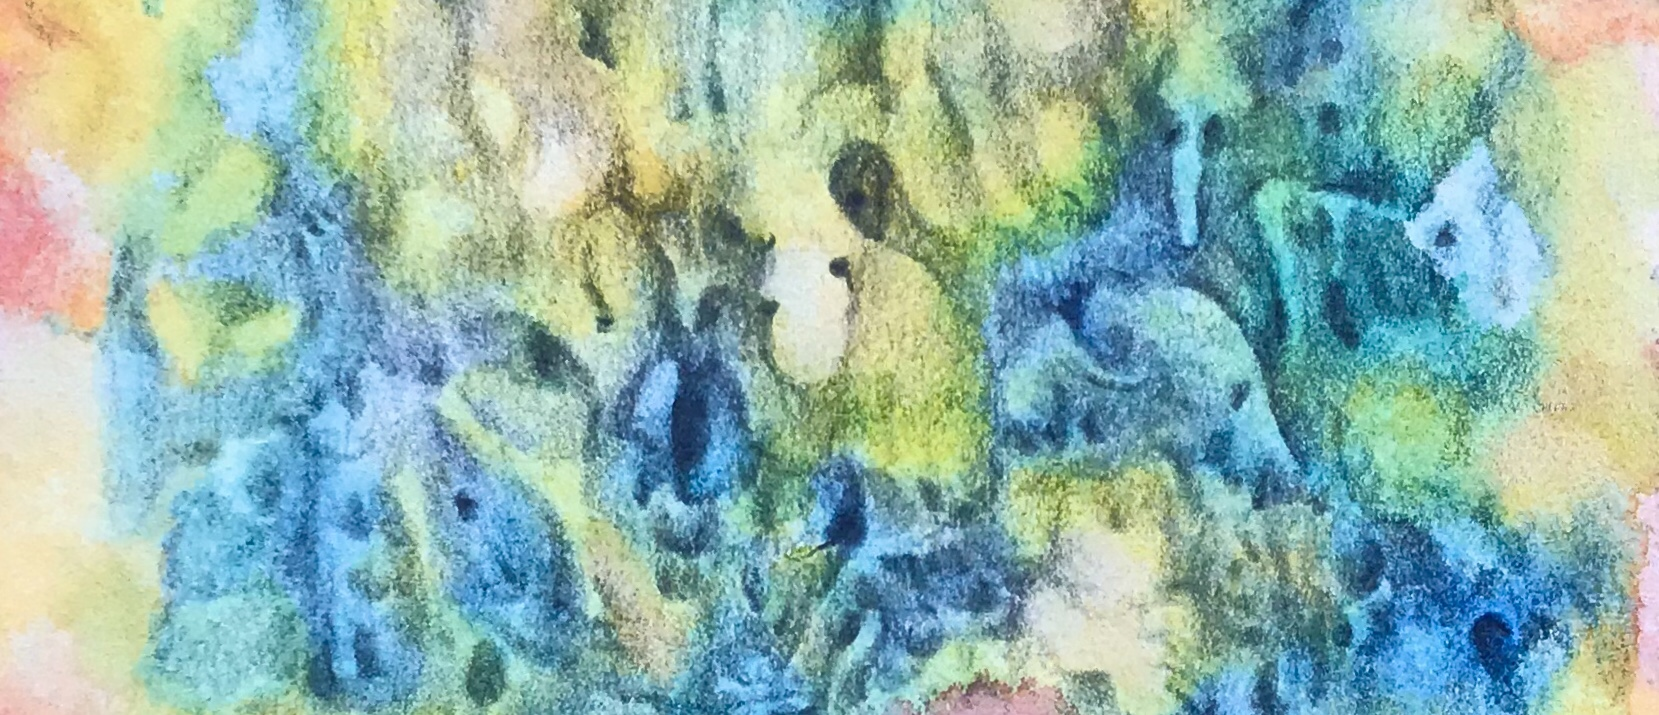 Detail of an abstract free association drawing over an abstract watercolor painting by MJ Seal